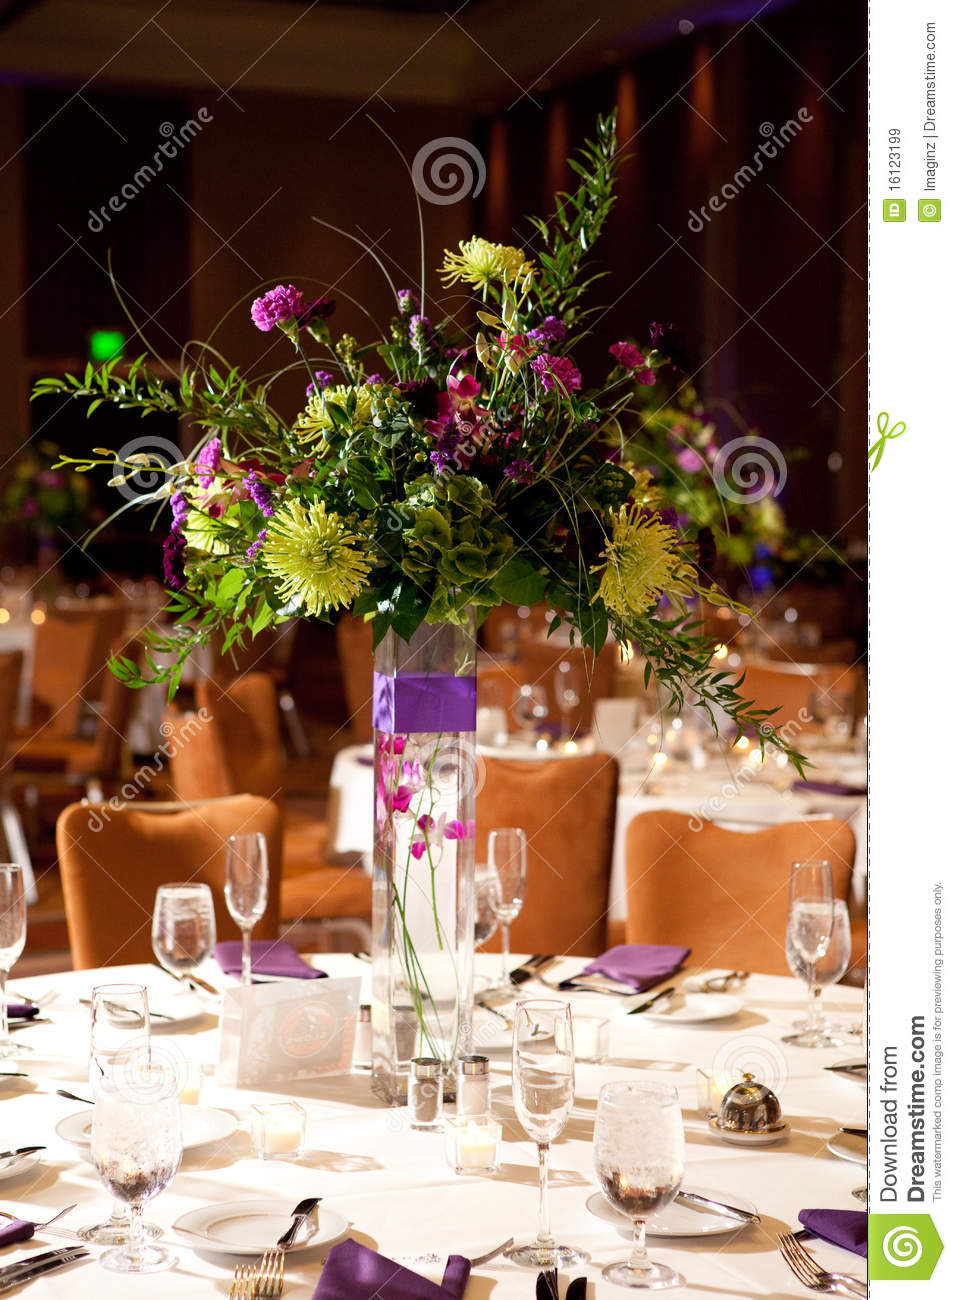 Flower centerpiece royalty free stock images image